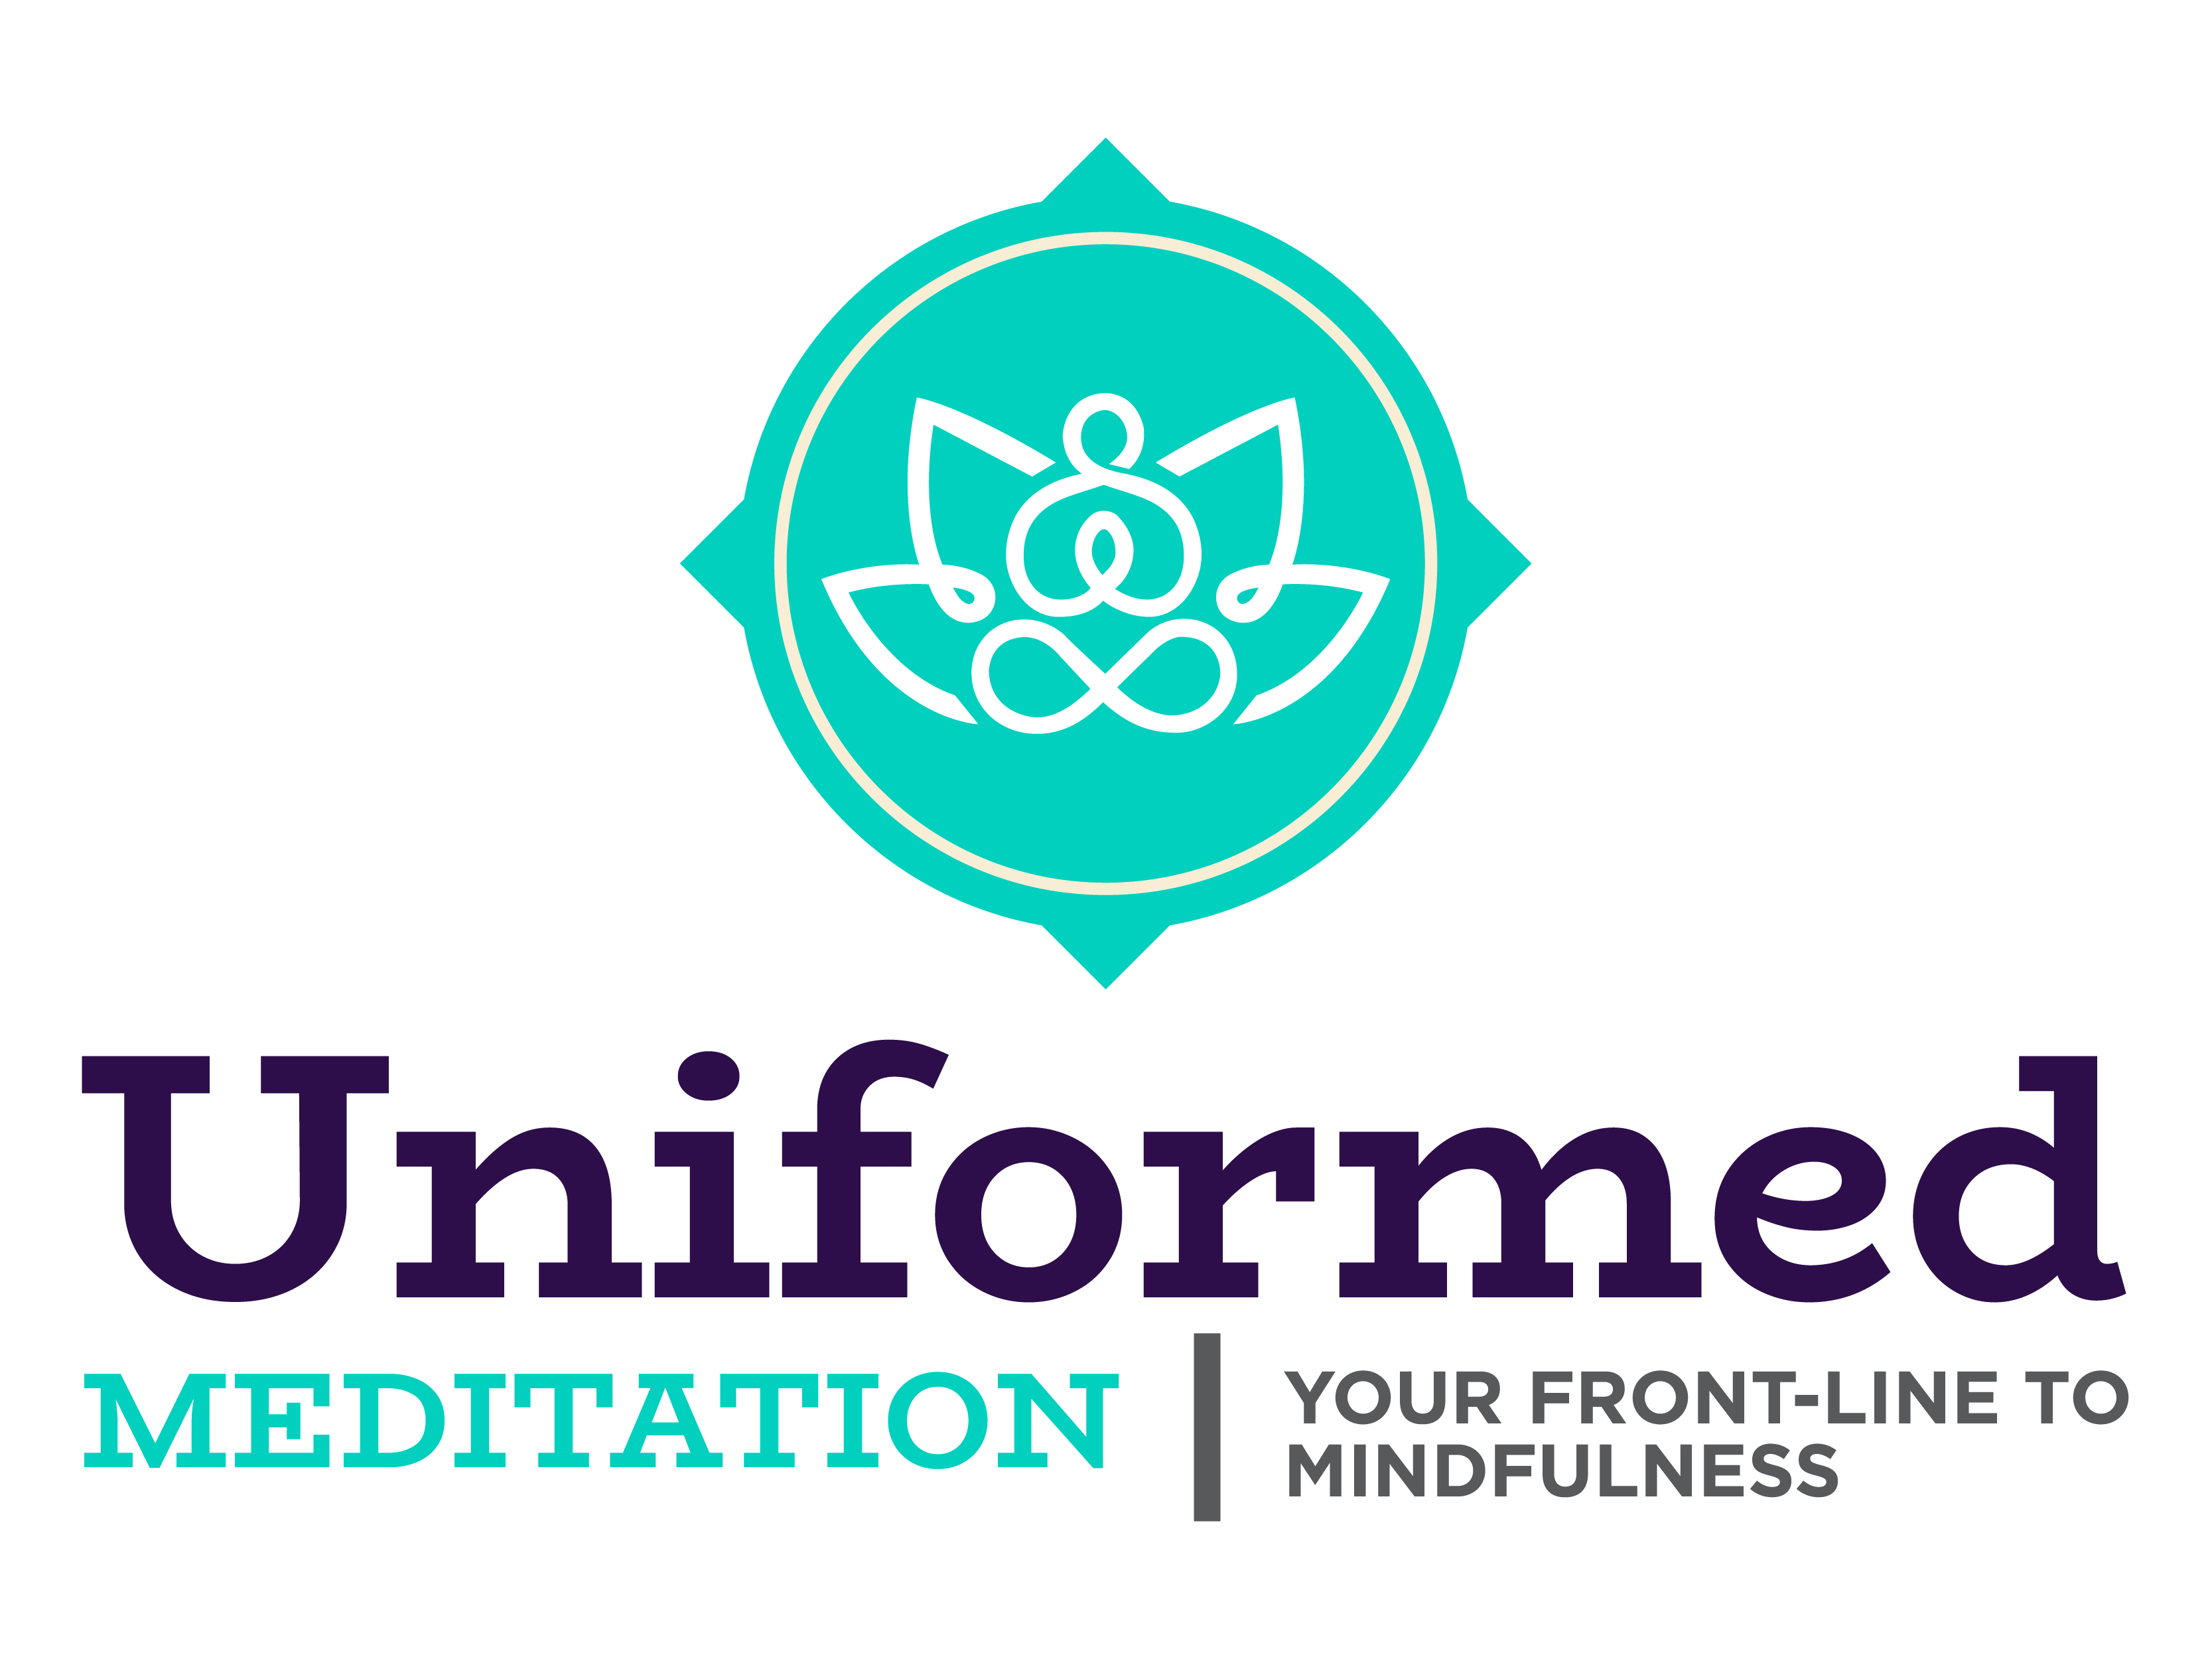 Uniformed Meditation your front-line to mindfulness